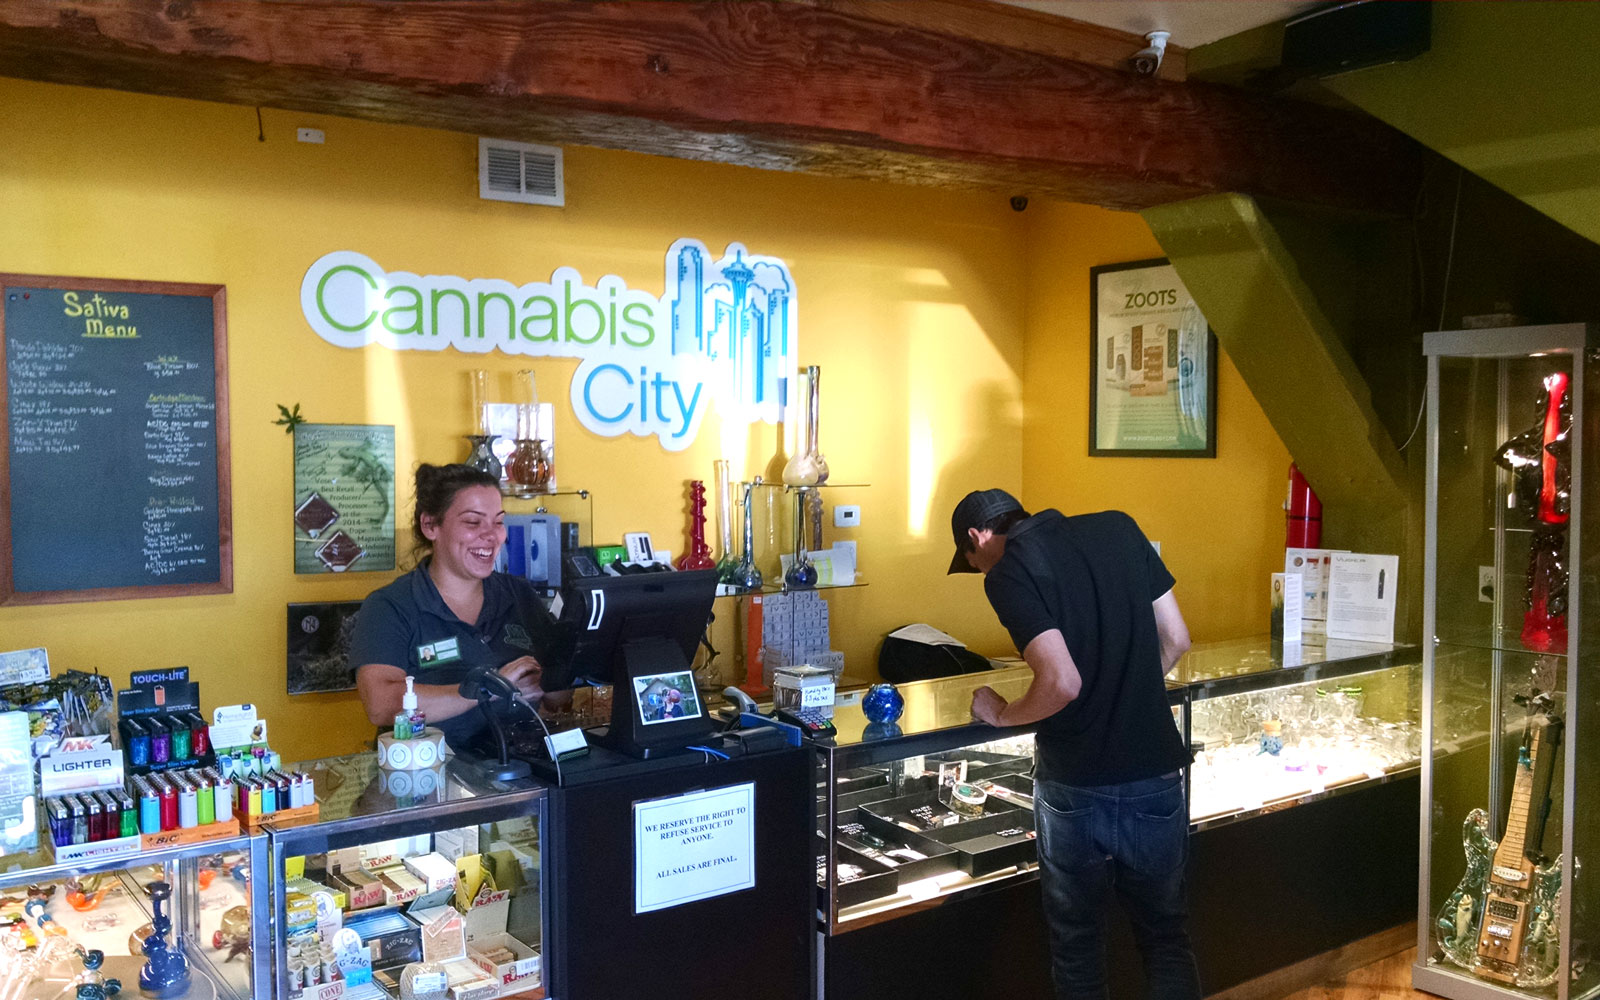 MJTOURISM072115-CannabisCity-Seattle.jpg